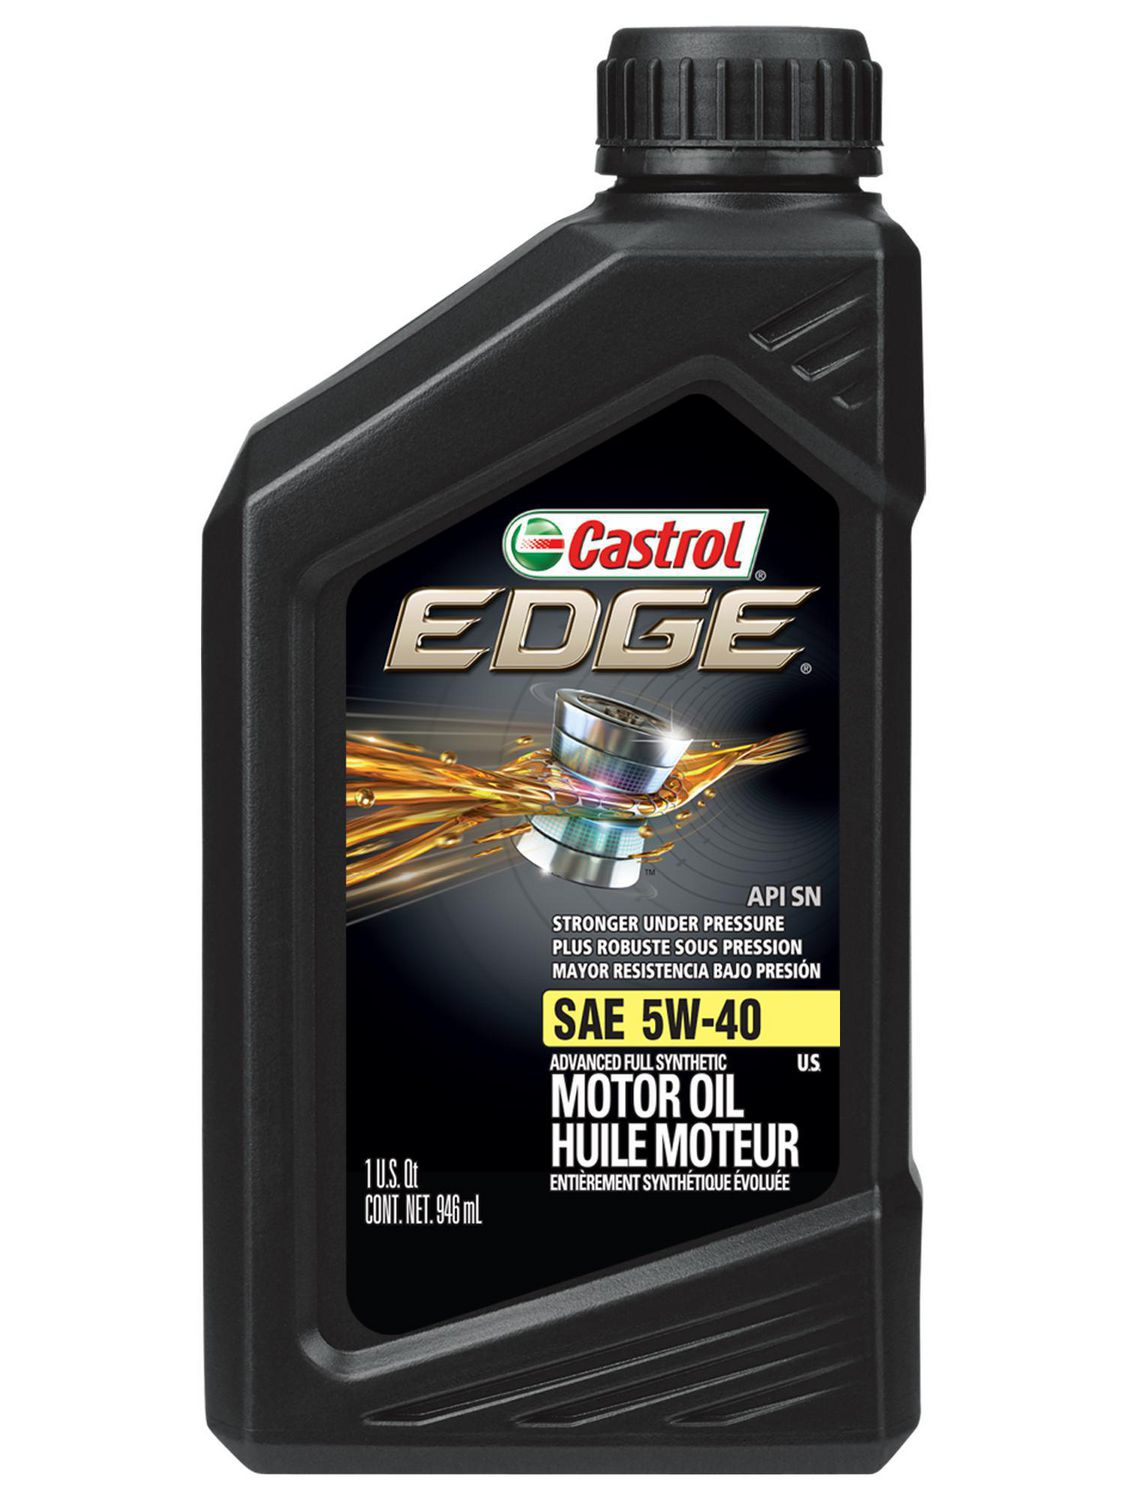 Fabriksnye Castrol EDGE 5W40 Full Synthetic 6x946 mL | Walmart Canada MD-32